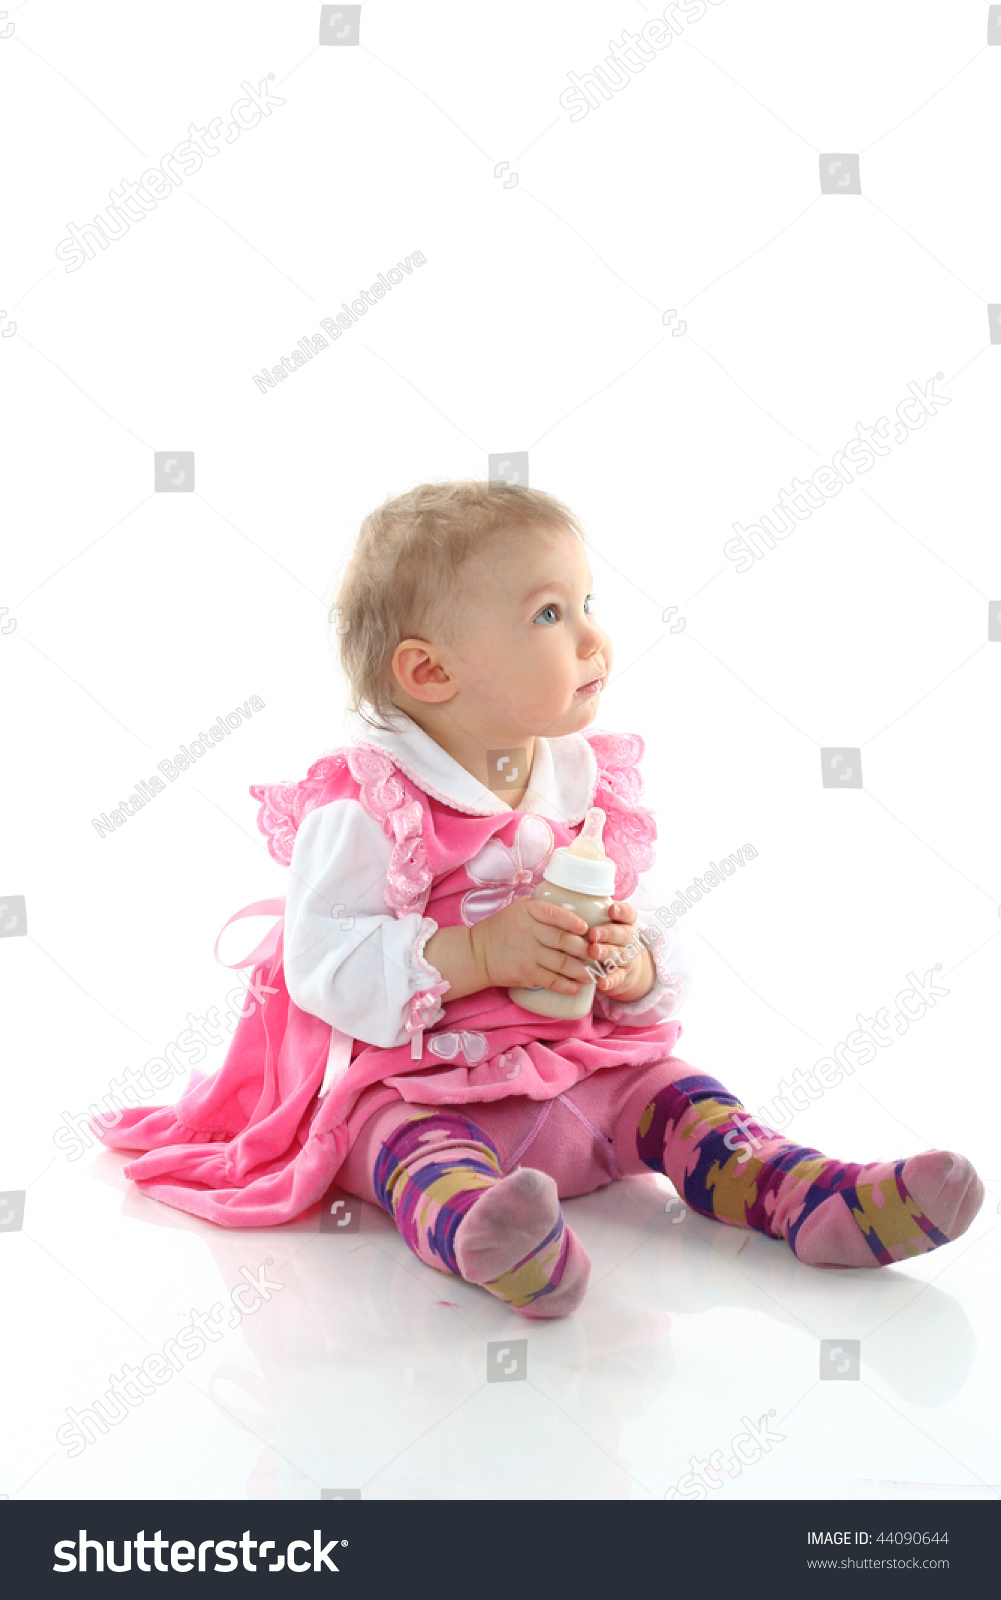 pretty baby girl drinking milk bottle stock photo (download now